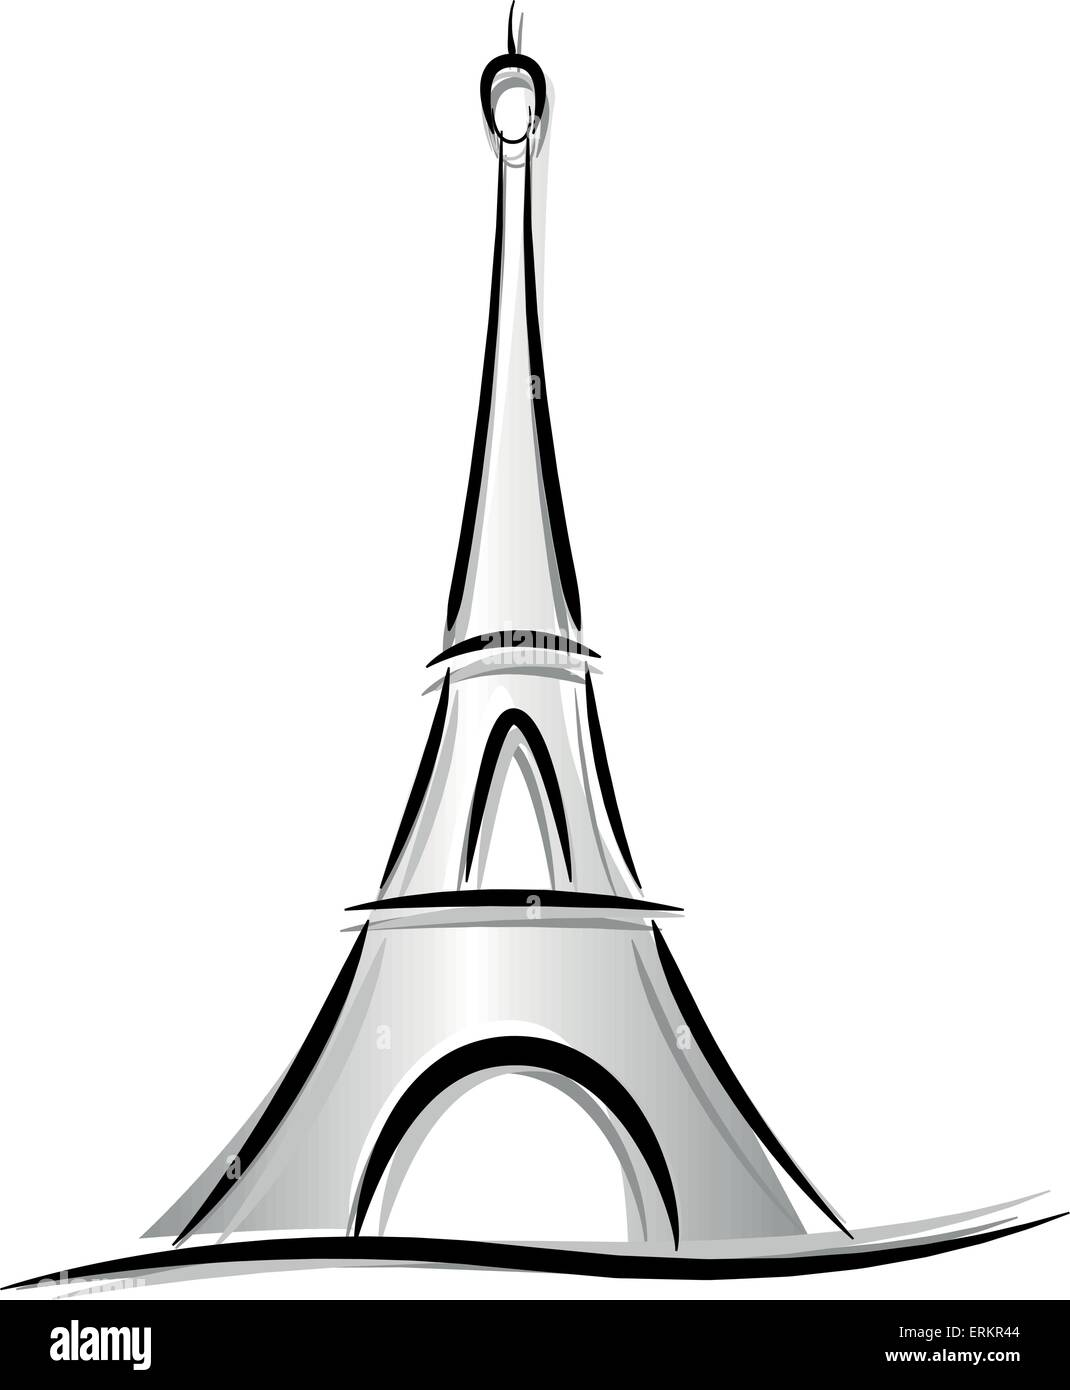 Vector drawing of eiffel tower on white background stock - Dessin tour eiffel simple ...